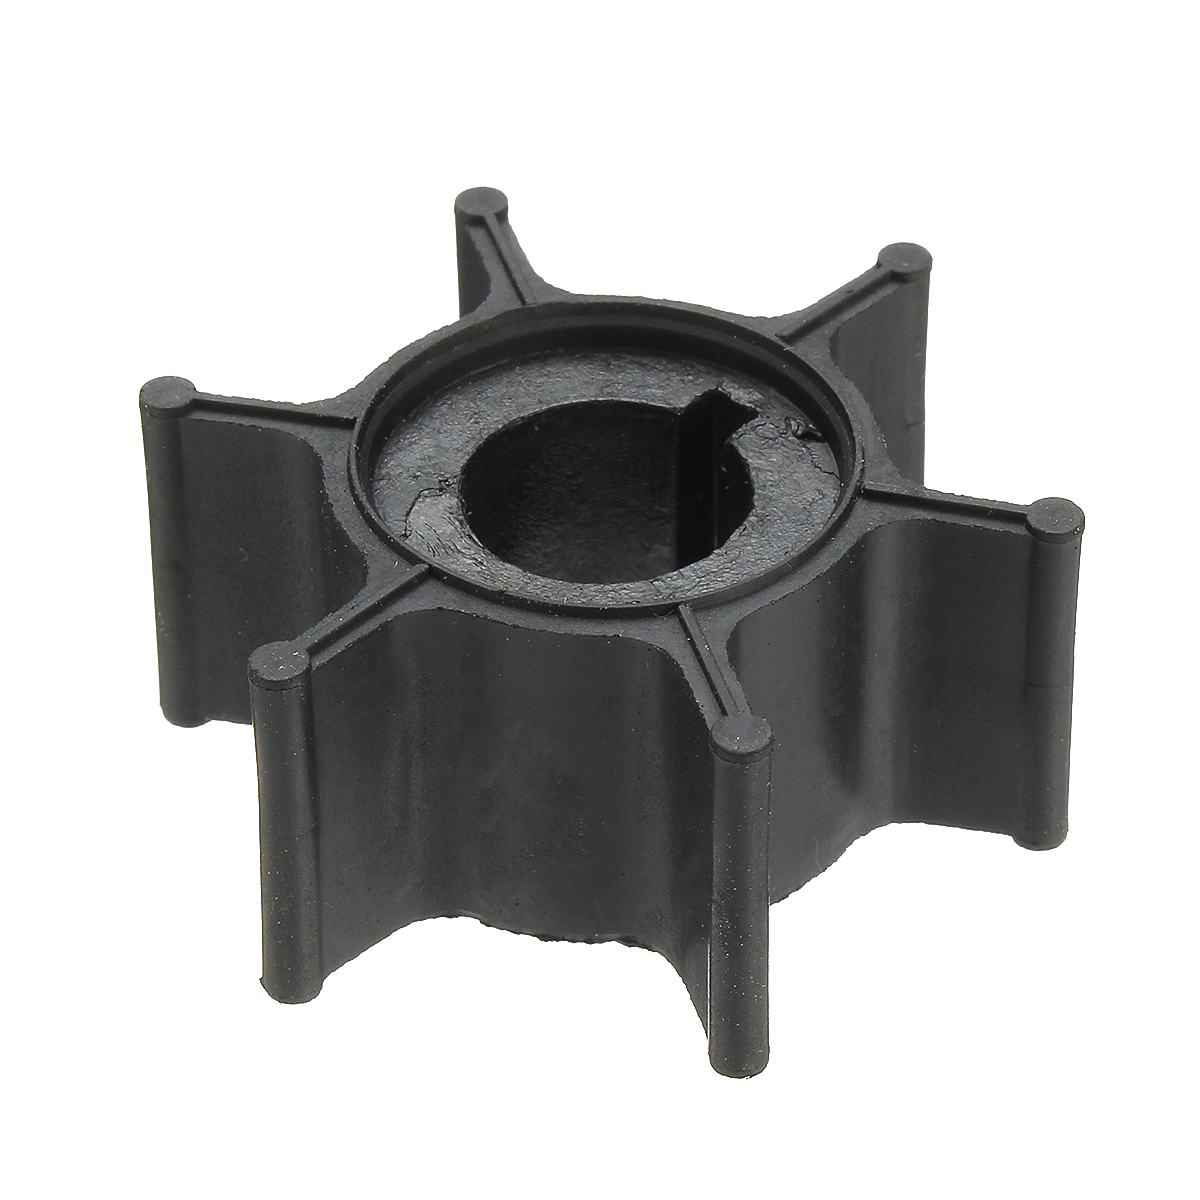 Water Pump Impeller For Yamaha 6/8HP Outboard Boat Motor 6G1-44352-00-00 18-3066